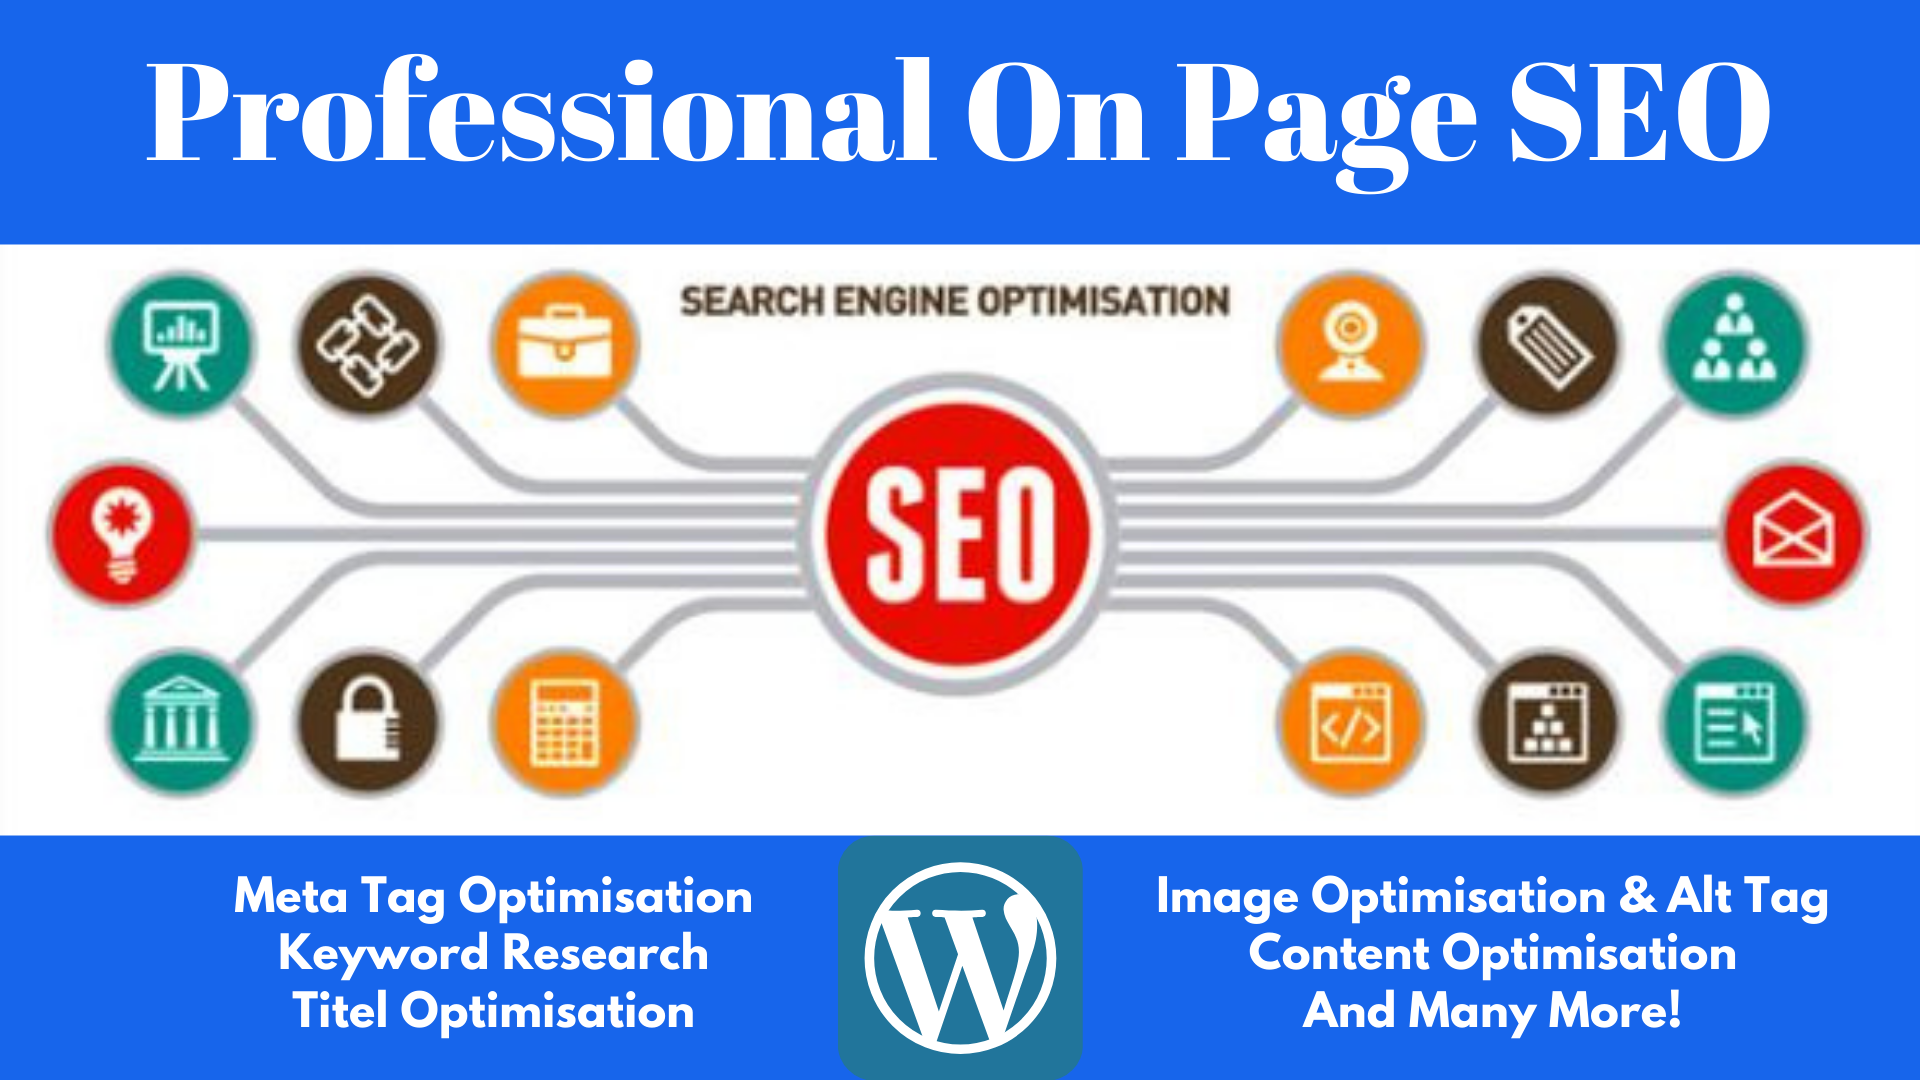 Professional On Page SEO for Google Ranking in 2021